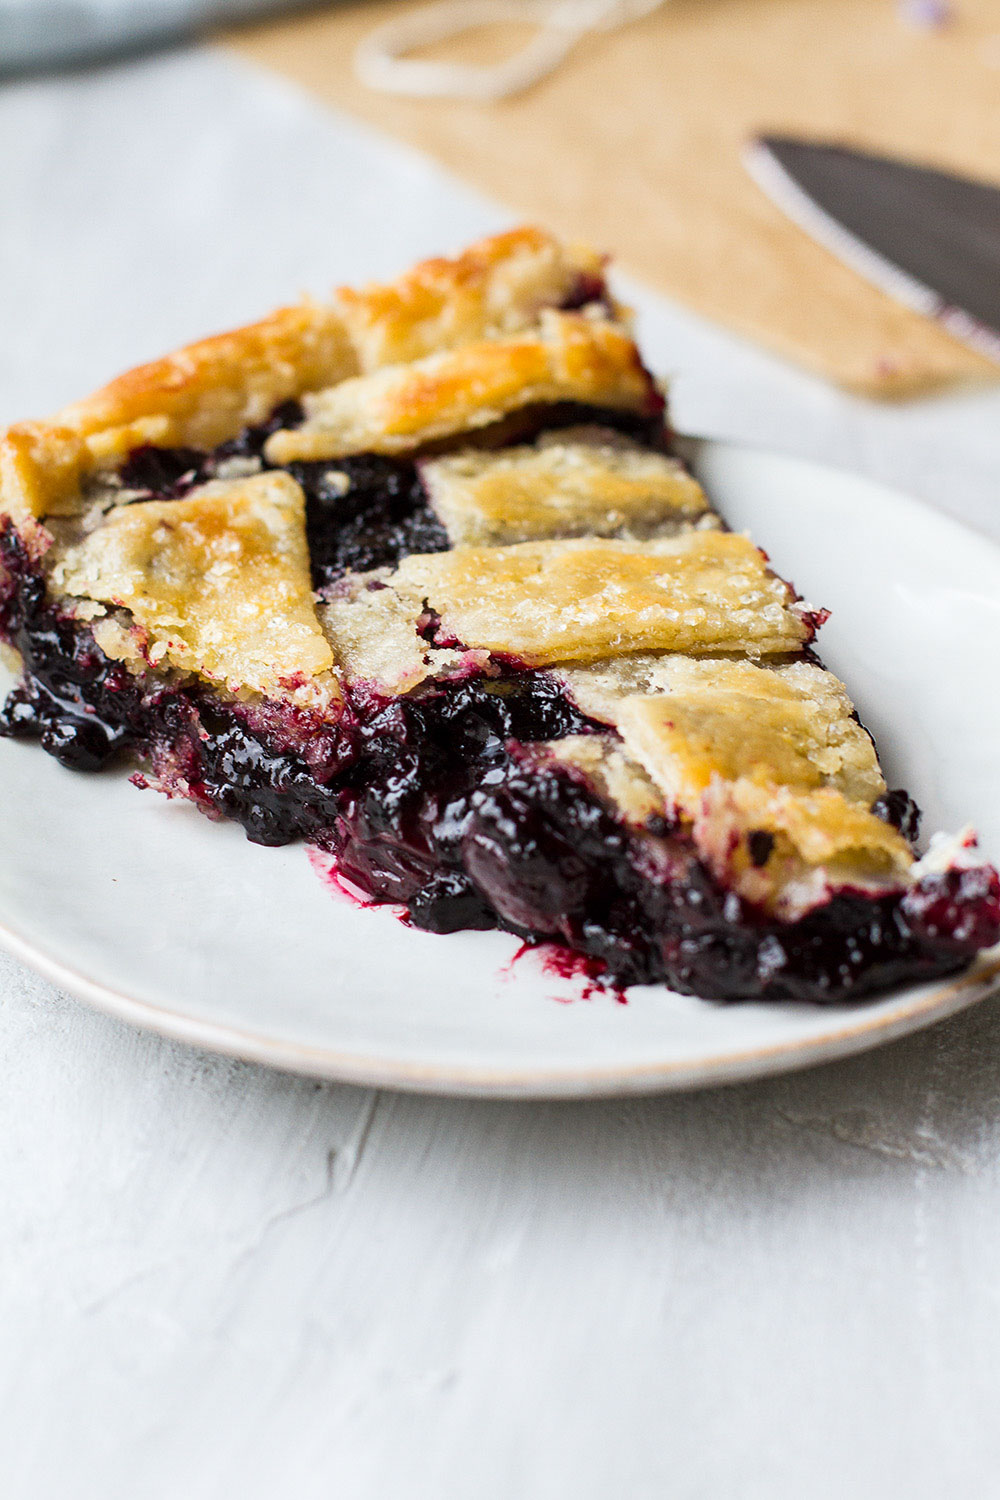 Slice of blueberry pie without runny filling.